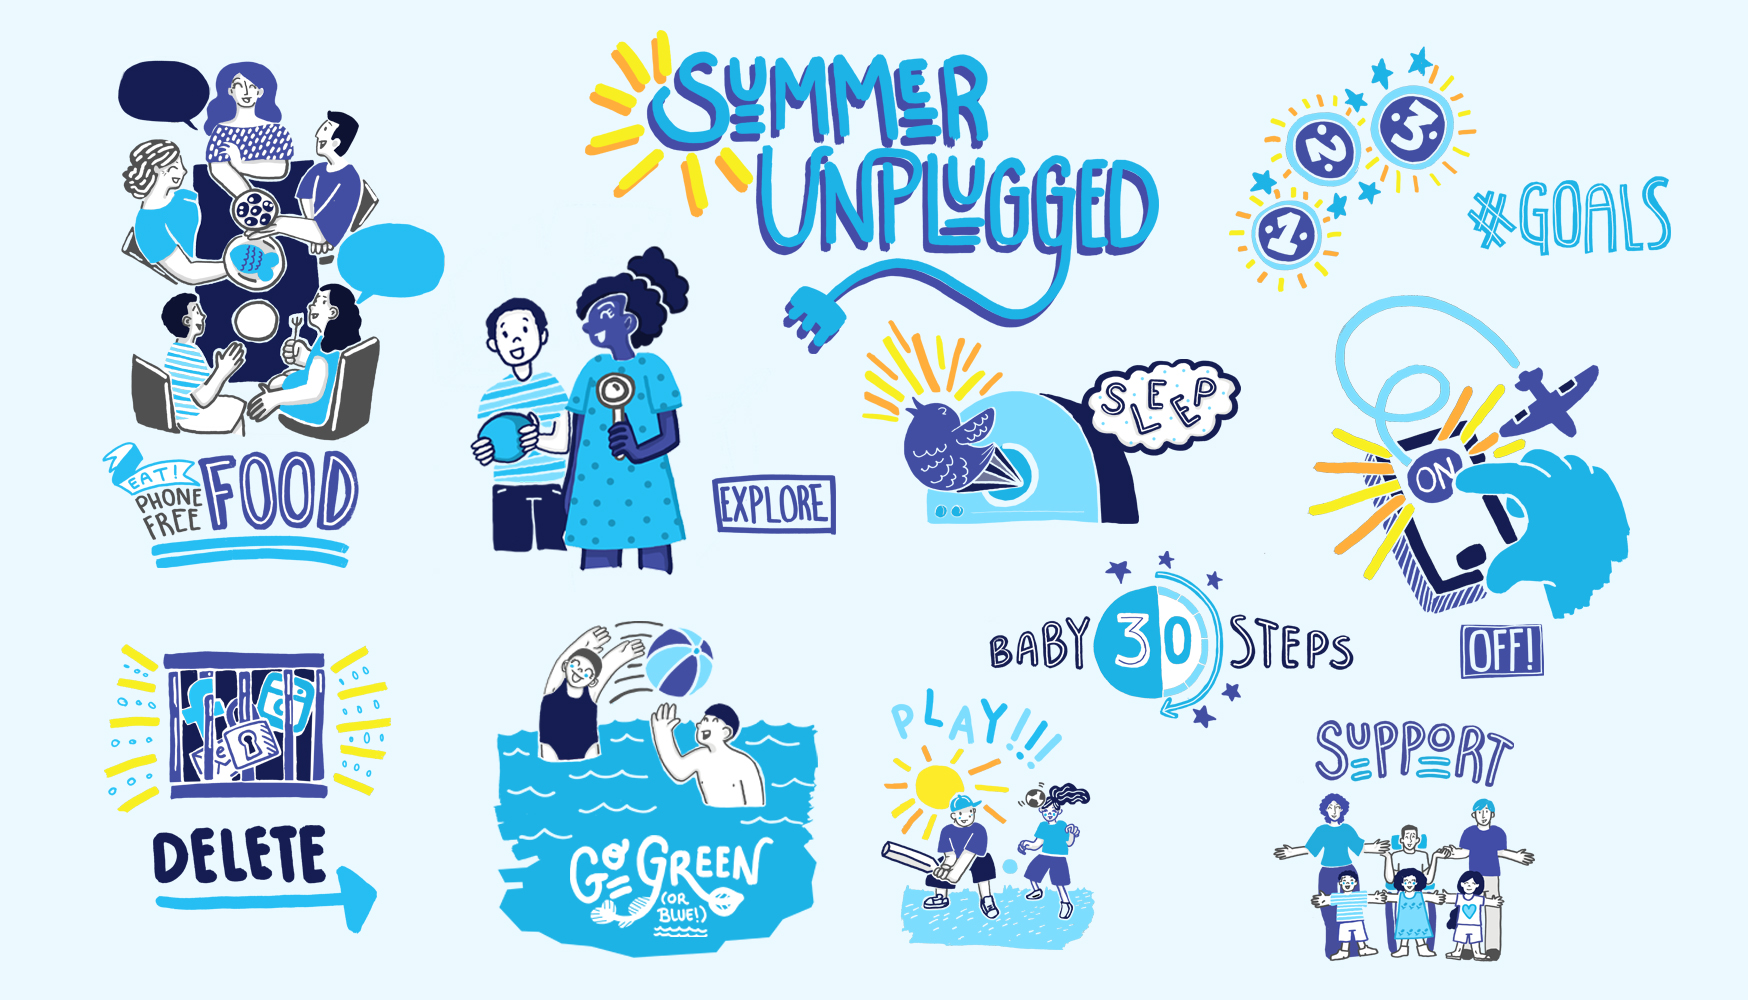 Summer Unplugged Digital Detox Challenge 2019